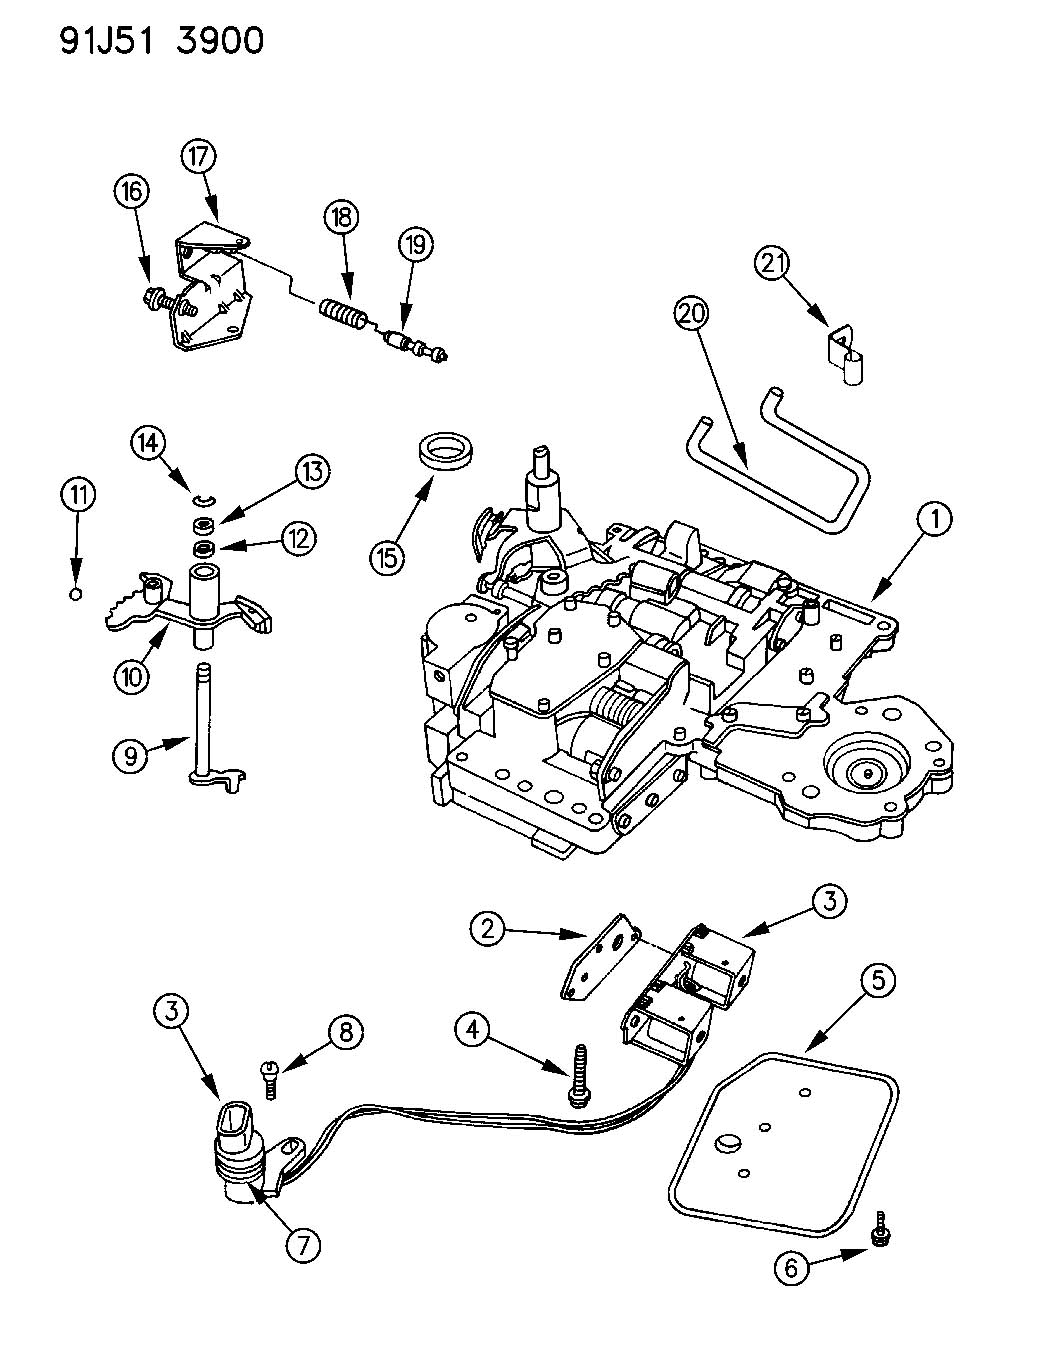 2006 jeep wrangler wiring schematic 2006 discover your wiring jeep cherokee body diagram 2006 jeep wrangler